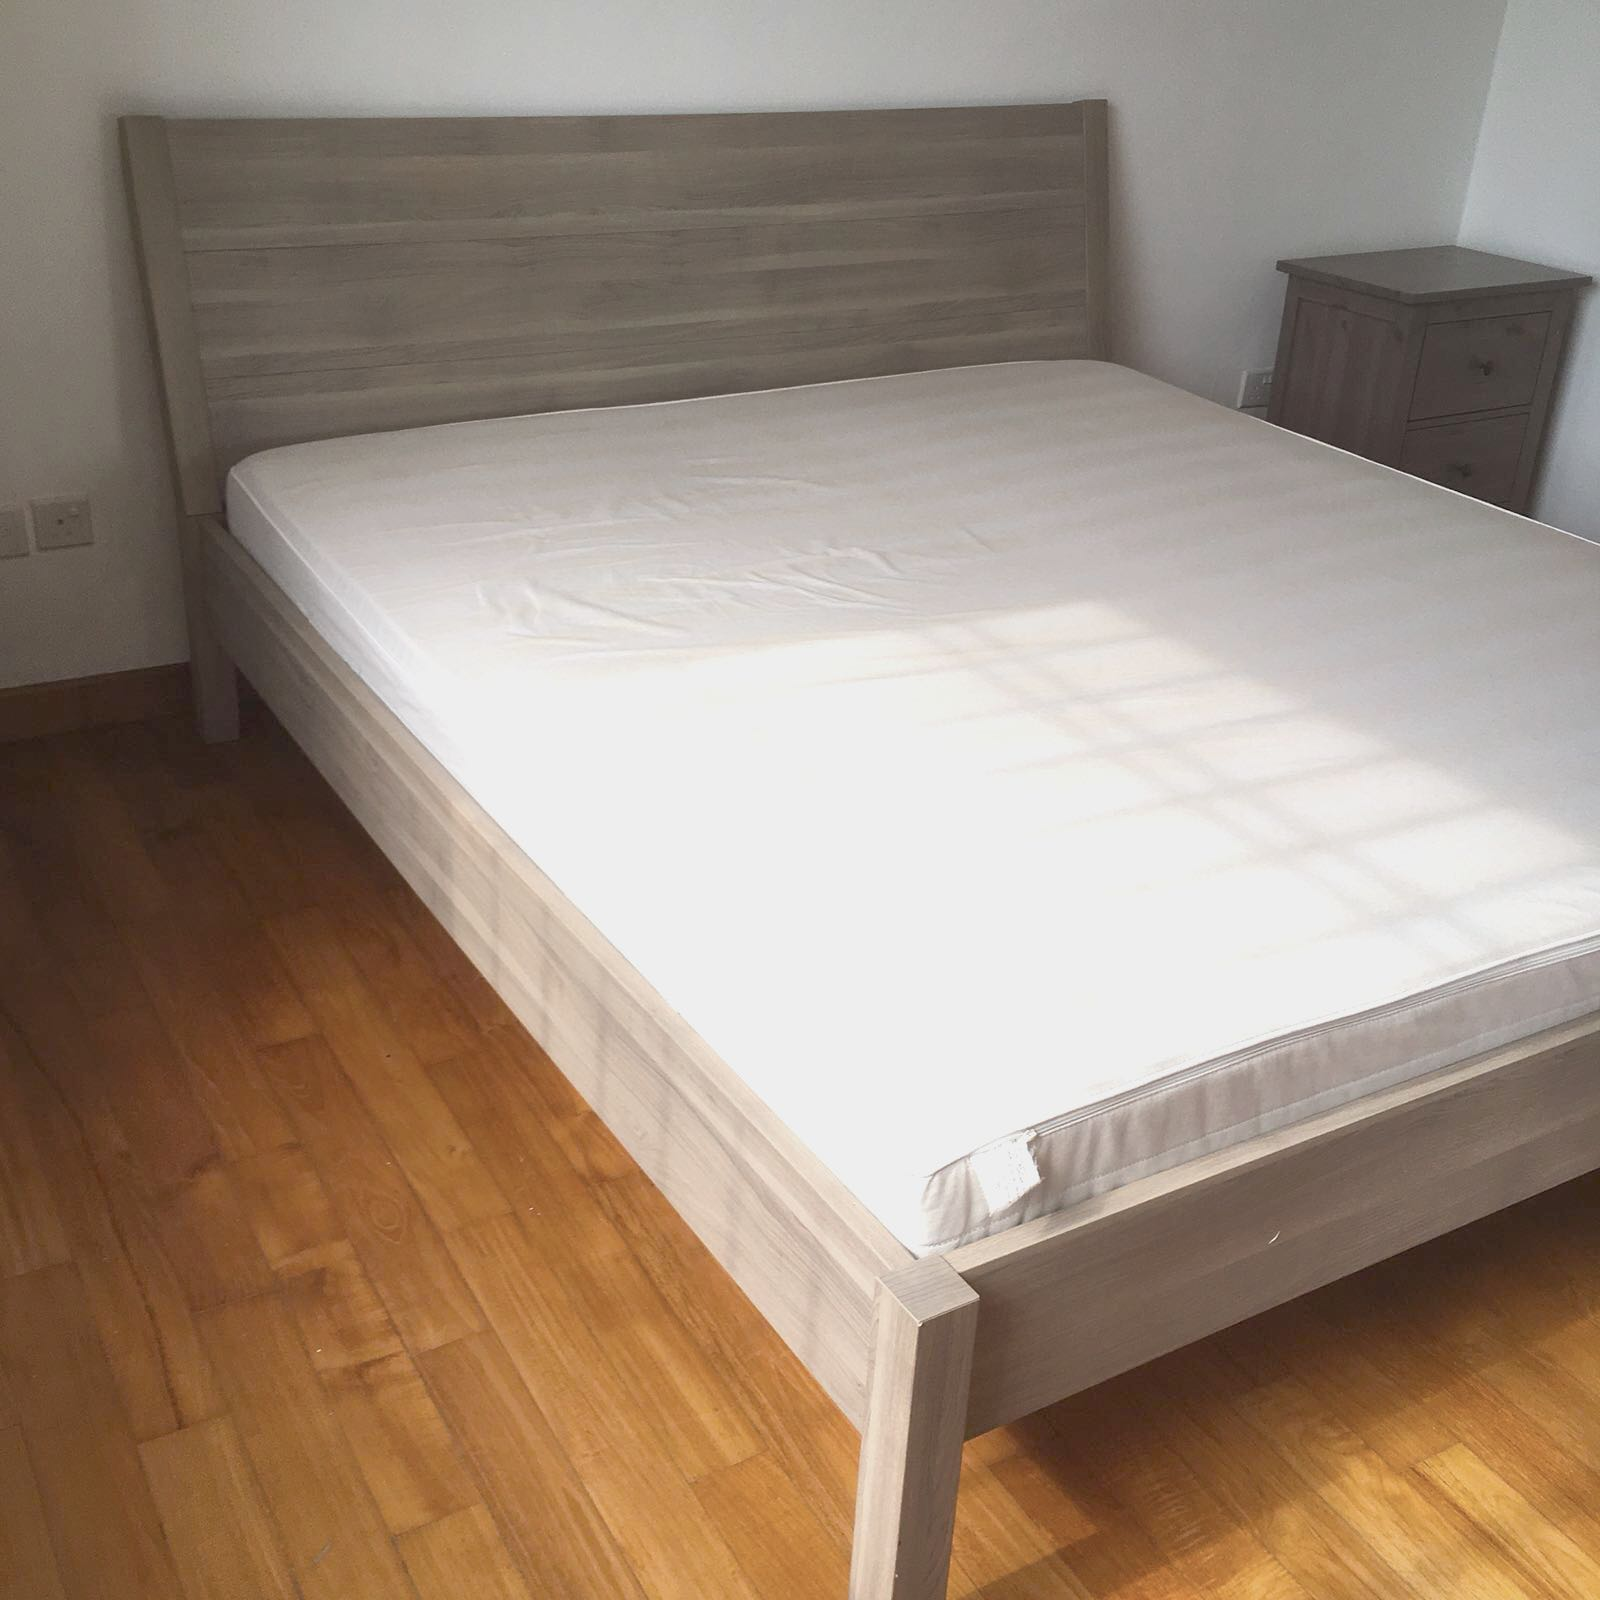 Great Condition Ikea King Size Bed Frame & Mattress, Furniture, Beds ...